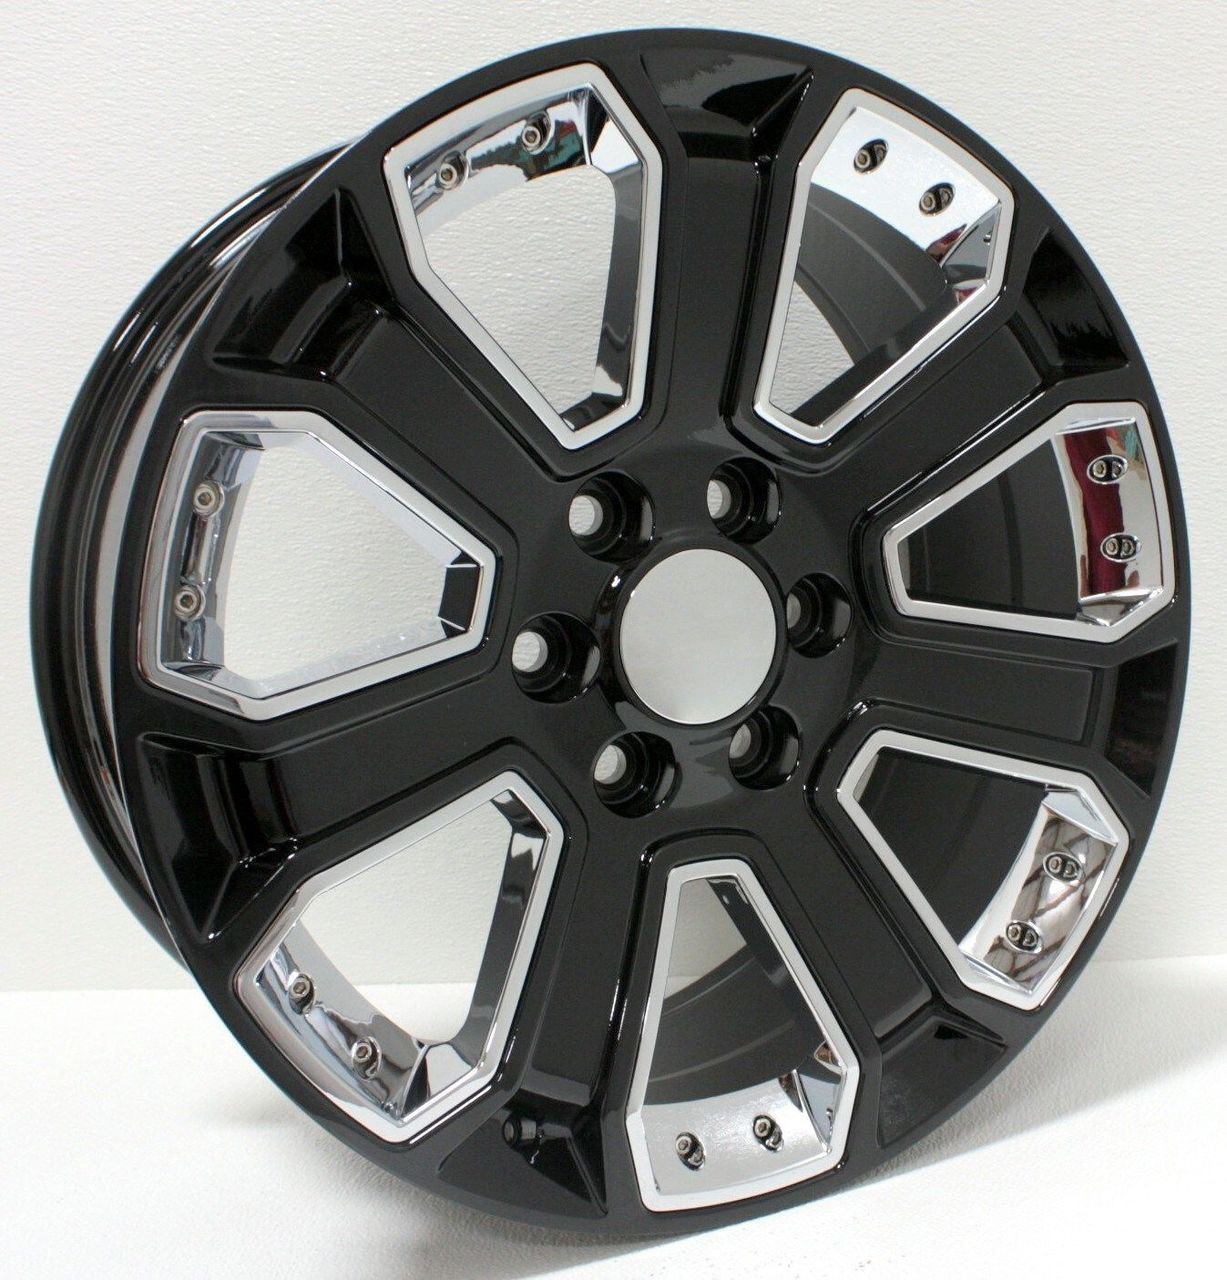 Gmc Gloss Black With Chrome Inserts 22 Inch Wheels Rims